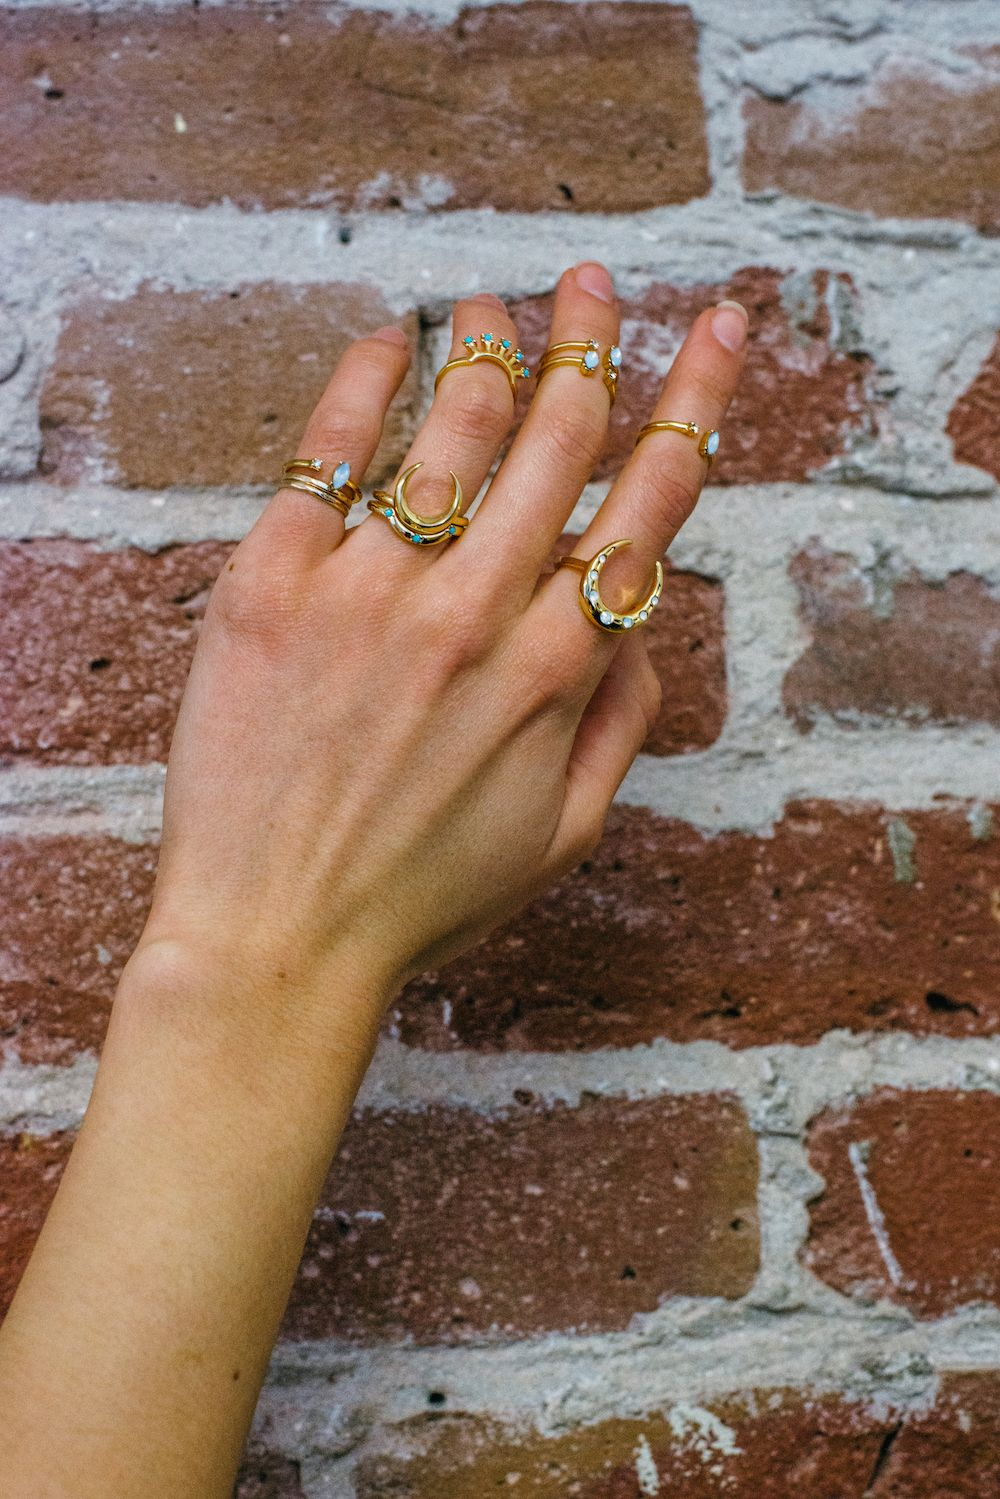 Morning midi rings✨  Oops, we did it again.. Spend $100 at the2bandits.com, get a $25 giftcard! The more you spend, the more you get #the2bandits #2BMorningdew